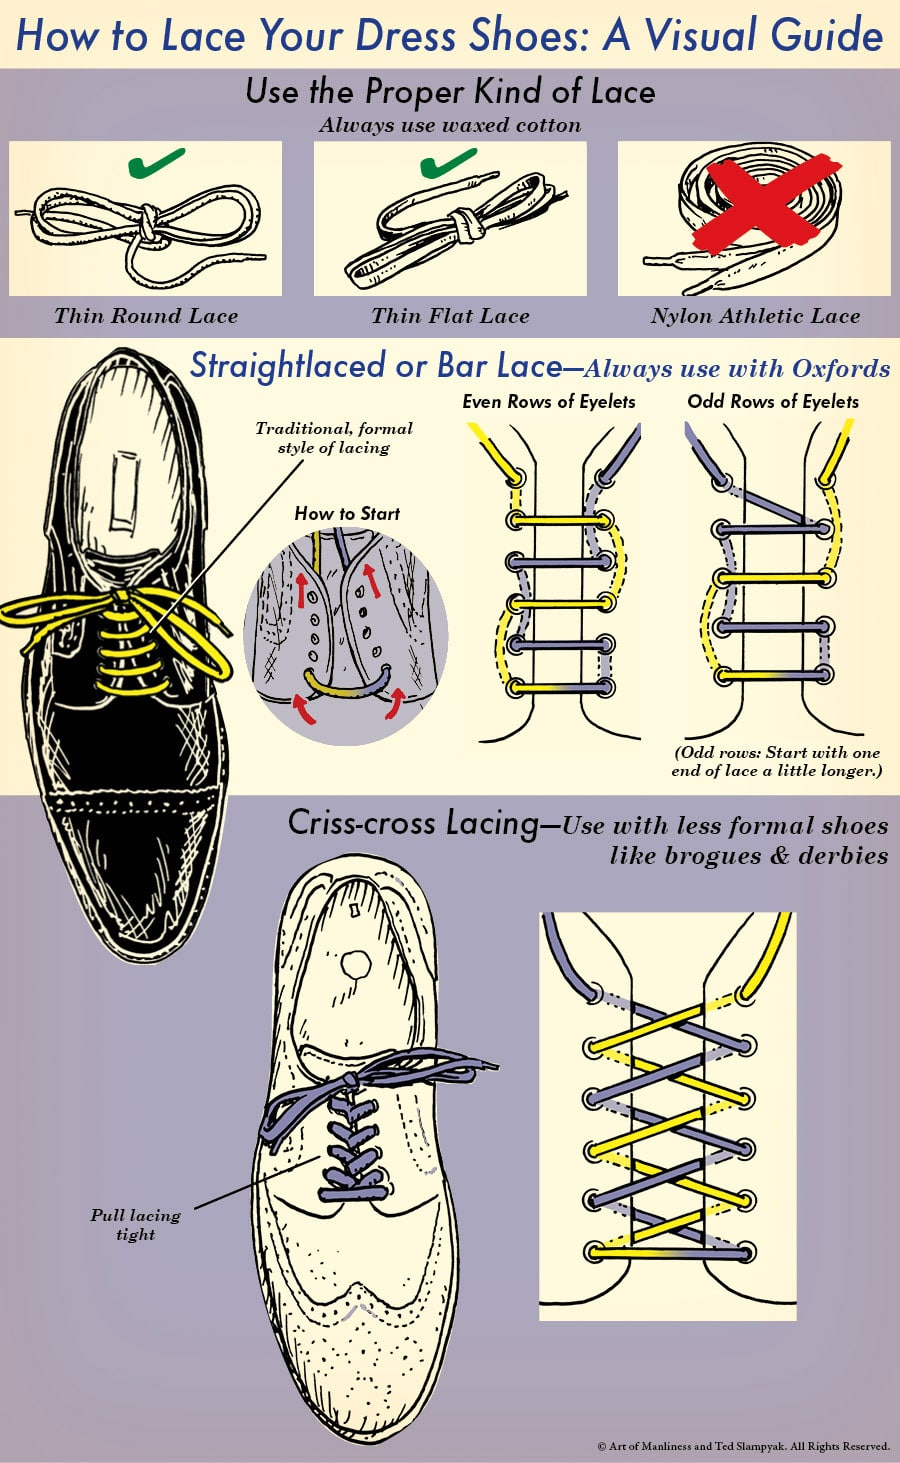 How to lace your dress shoes the art of manliness how to lace dress shoes illustration ccuart Choice Image